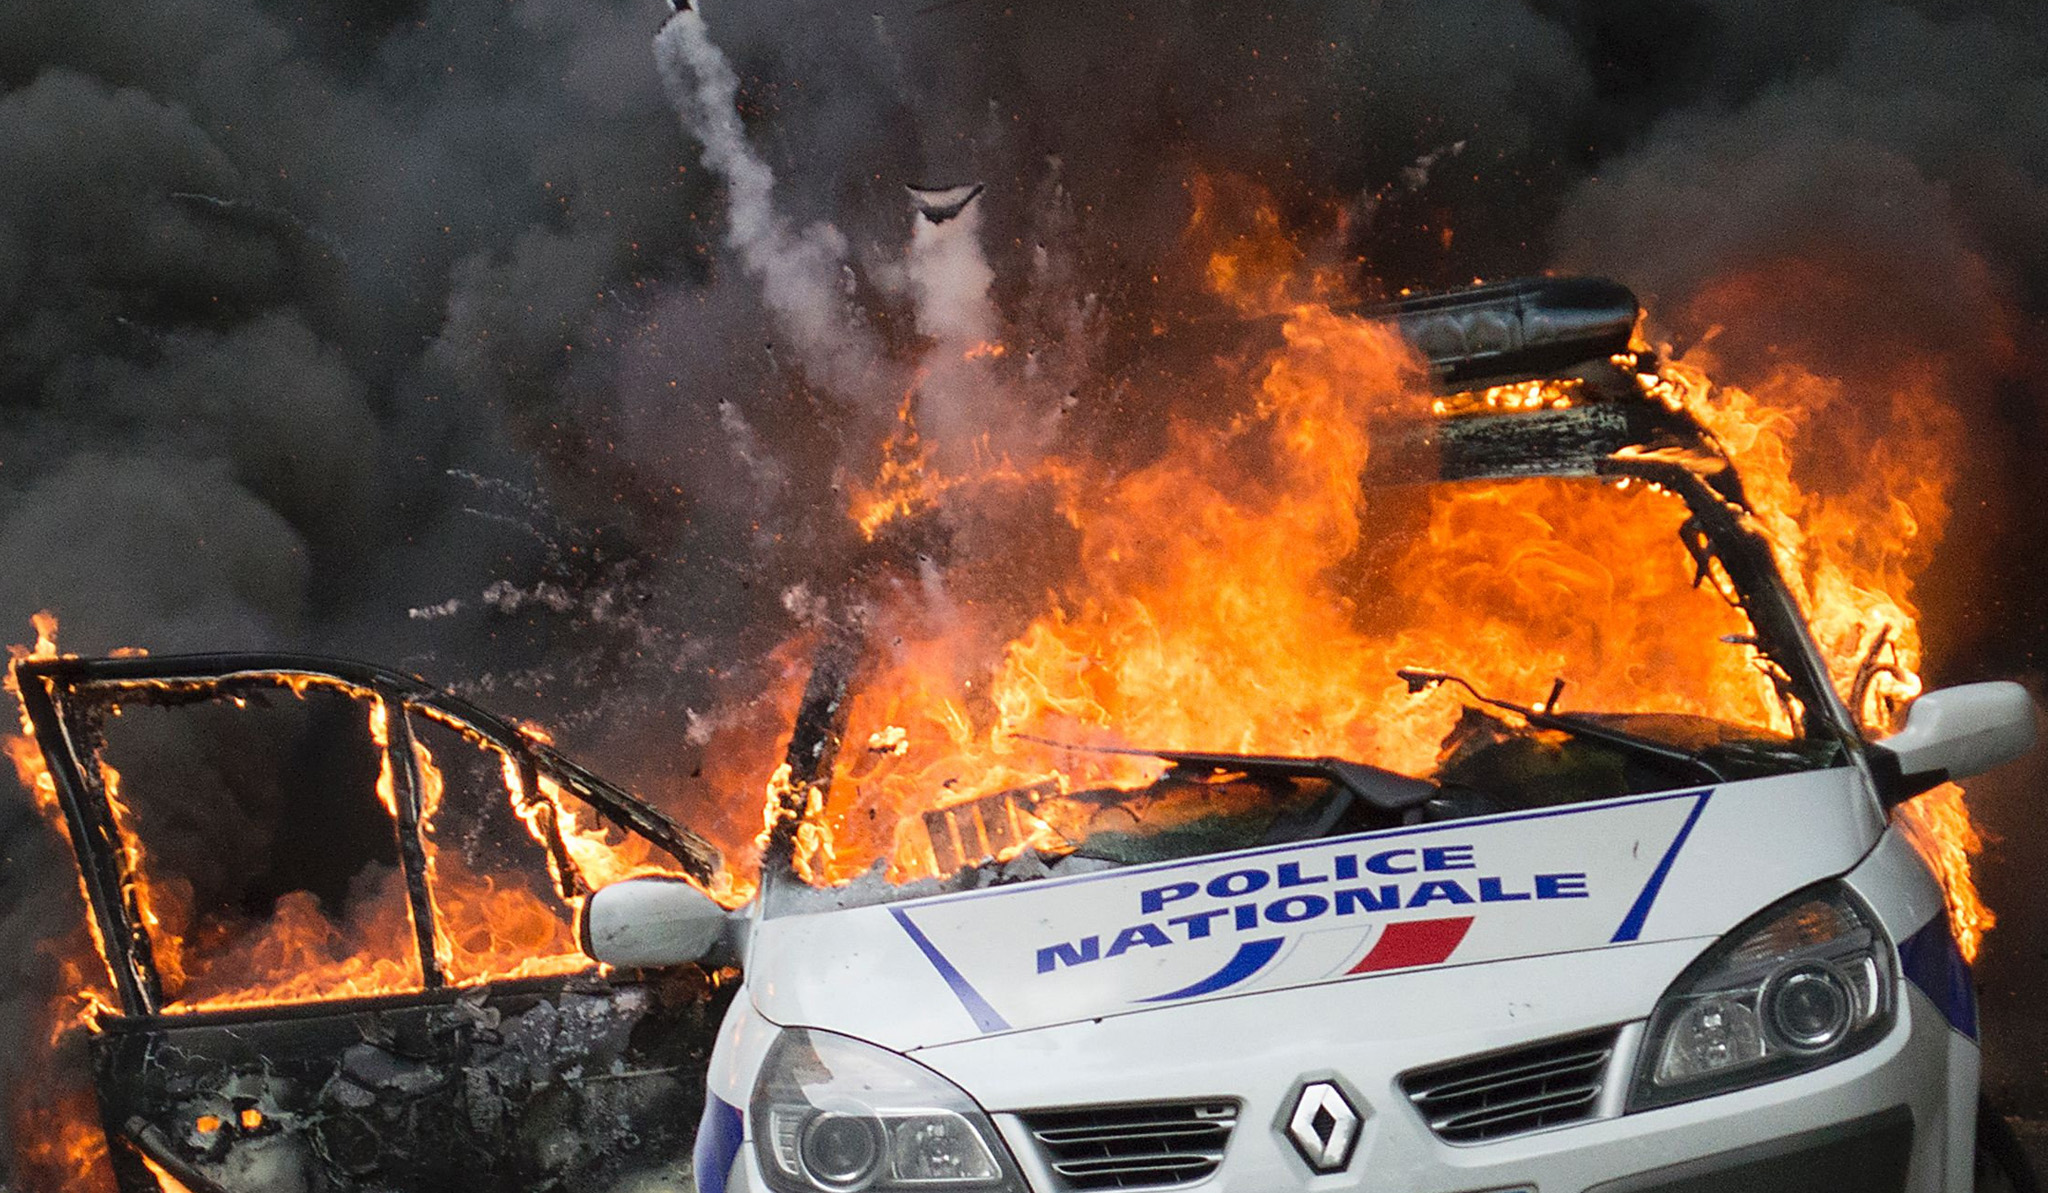 A police car explodes after being set on fire during an unauthorized counter-demonstration against police violence on May 18, 2016 in Paris